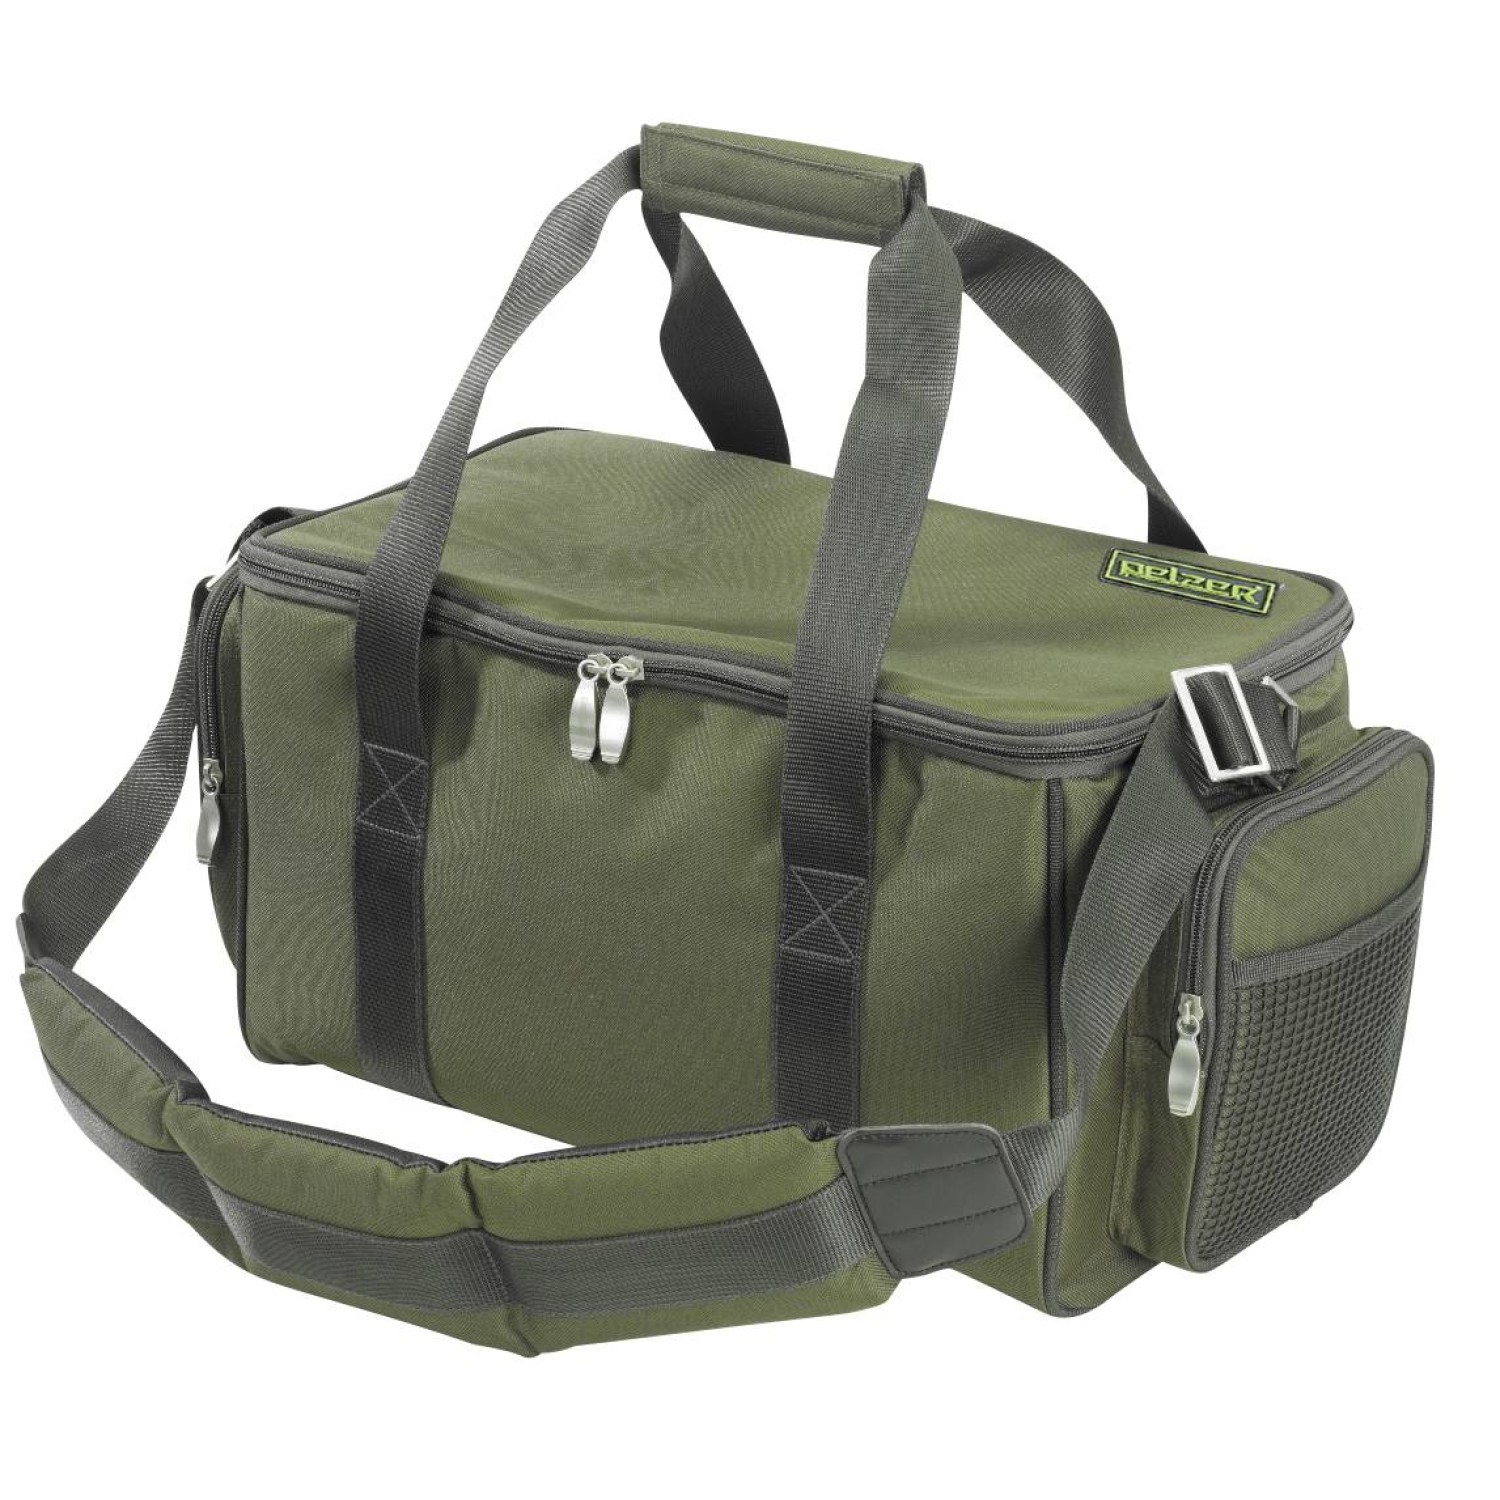 Pelzer Executive Boilie Bag, 50 x 23 x 27cm